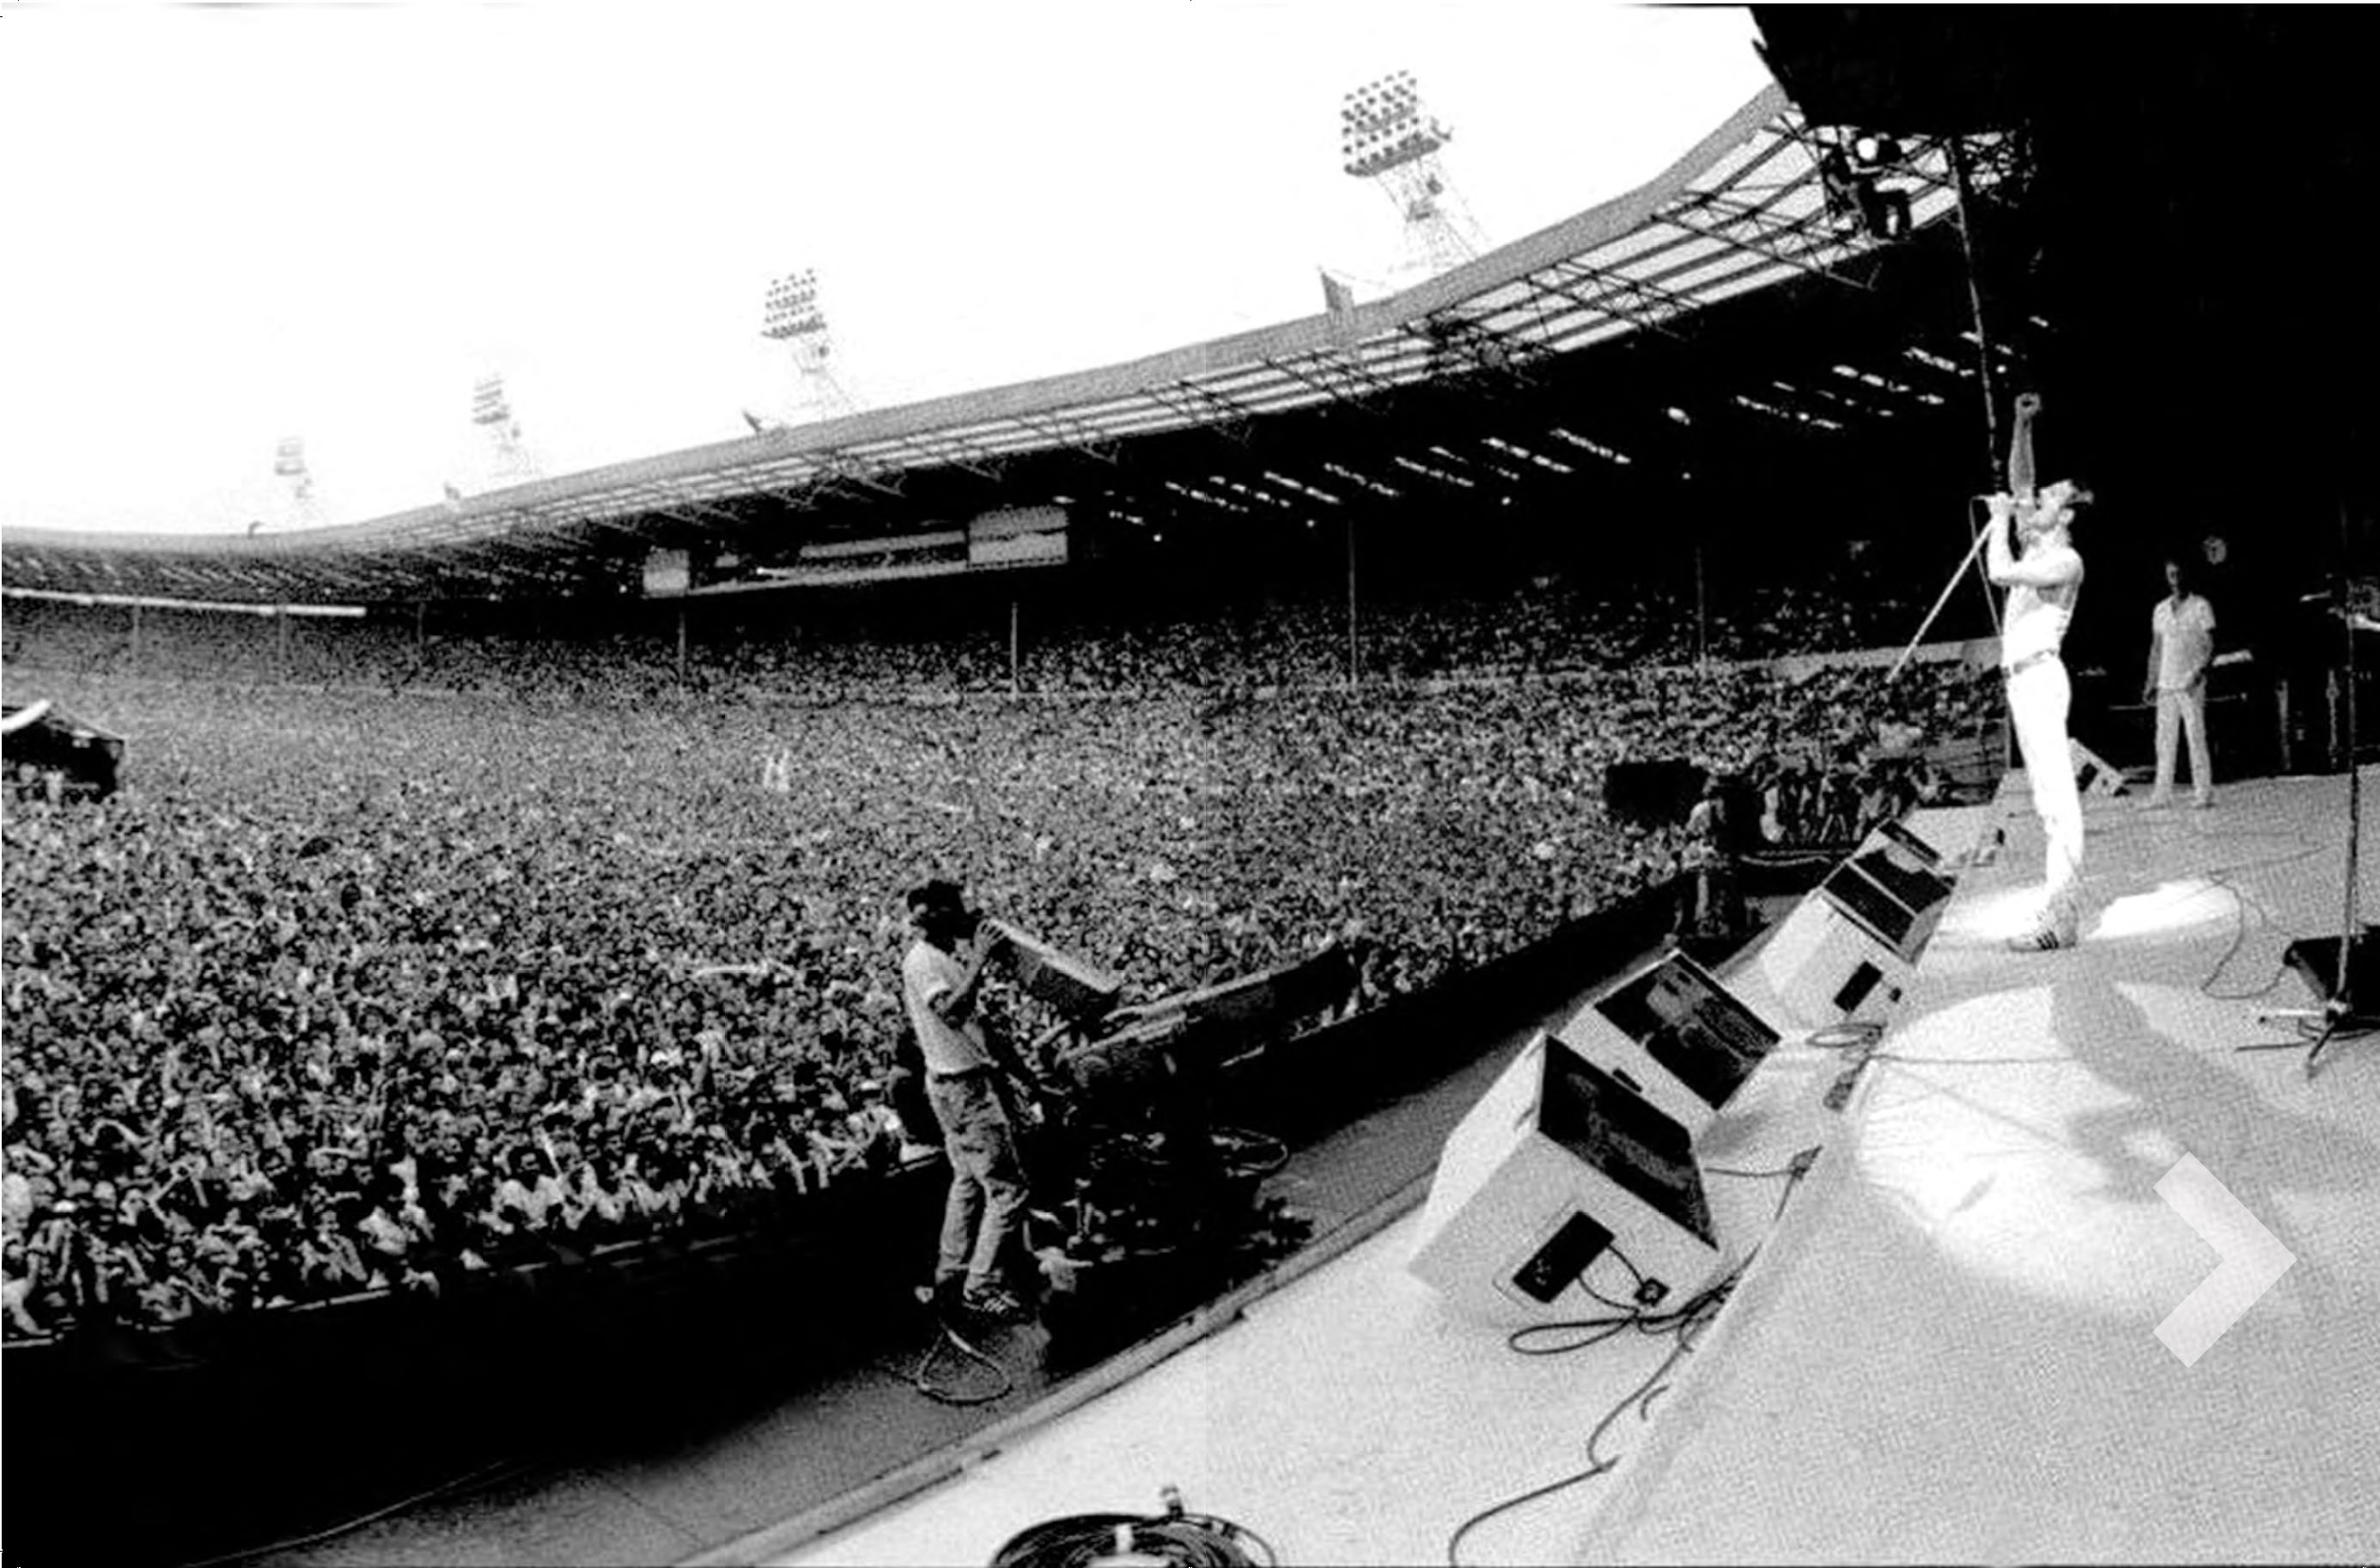 queen live aid 1985 full concert free download